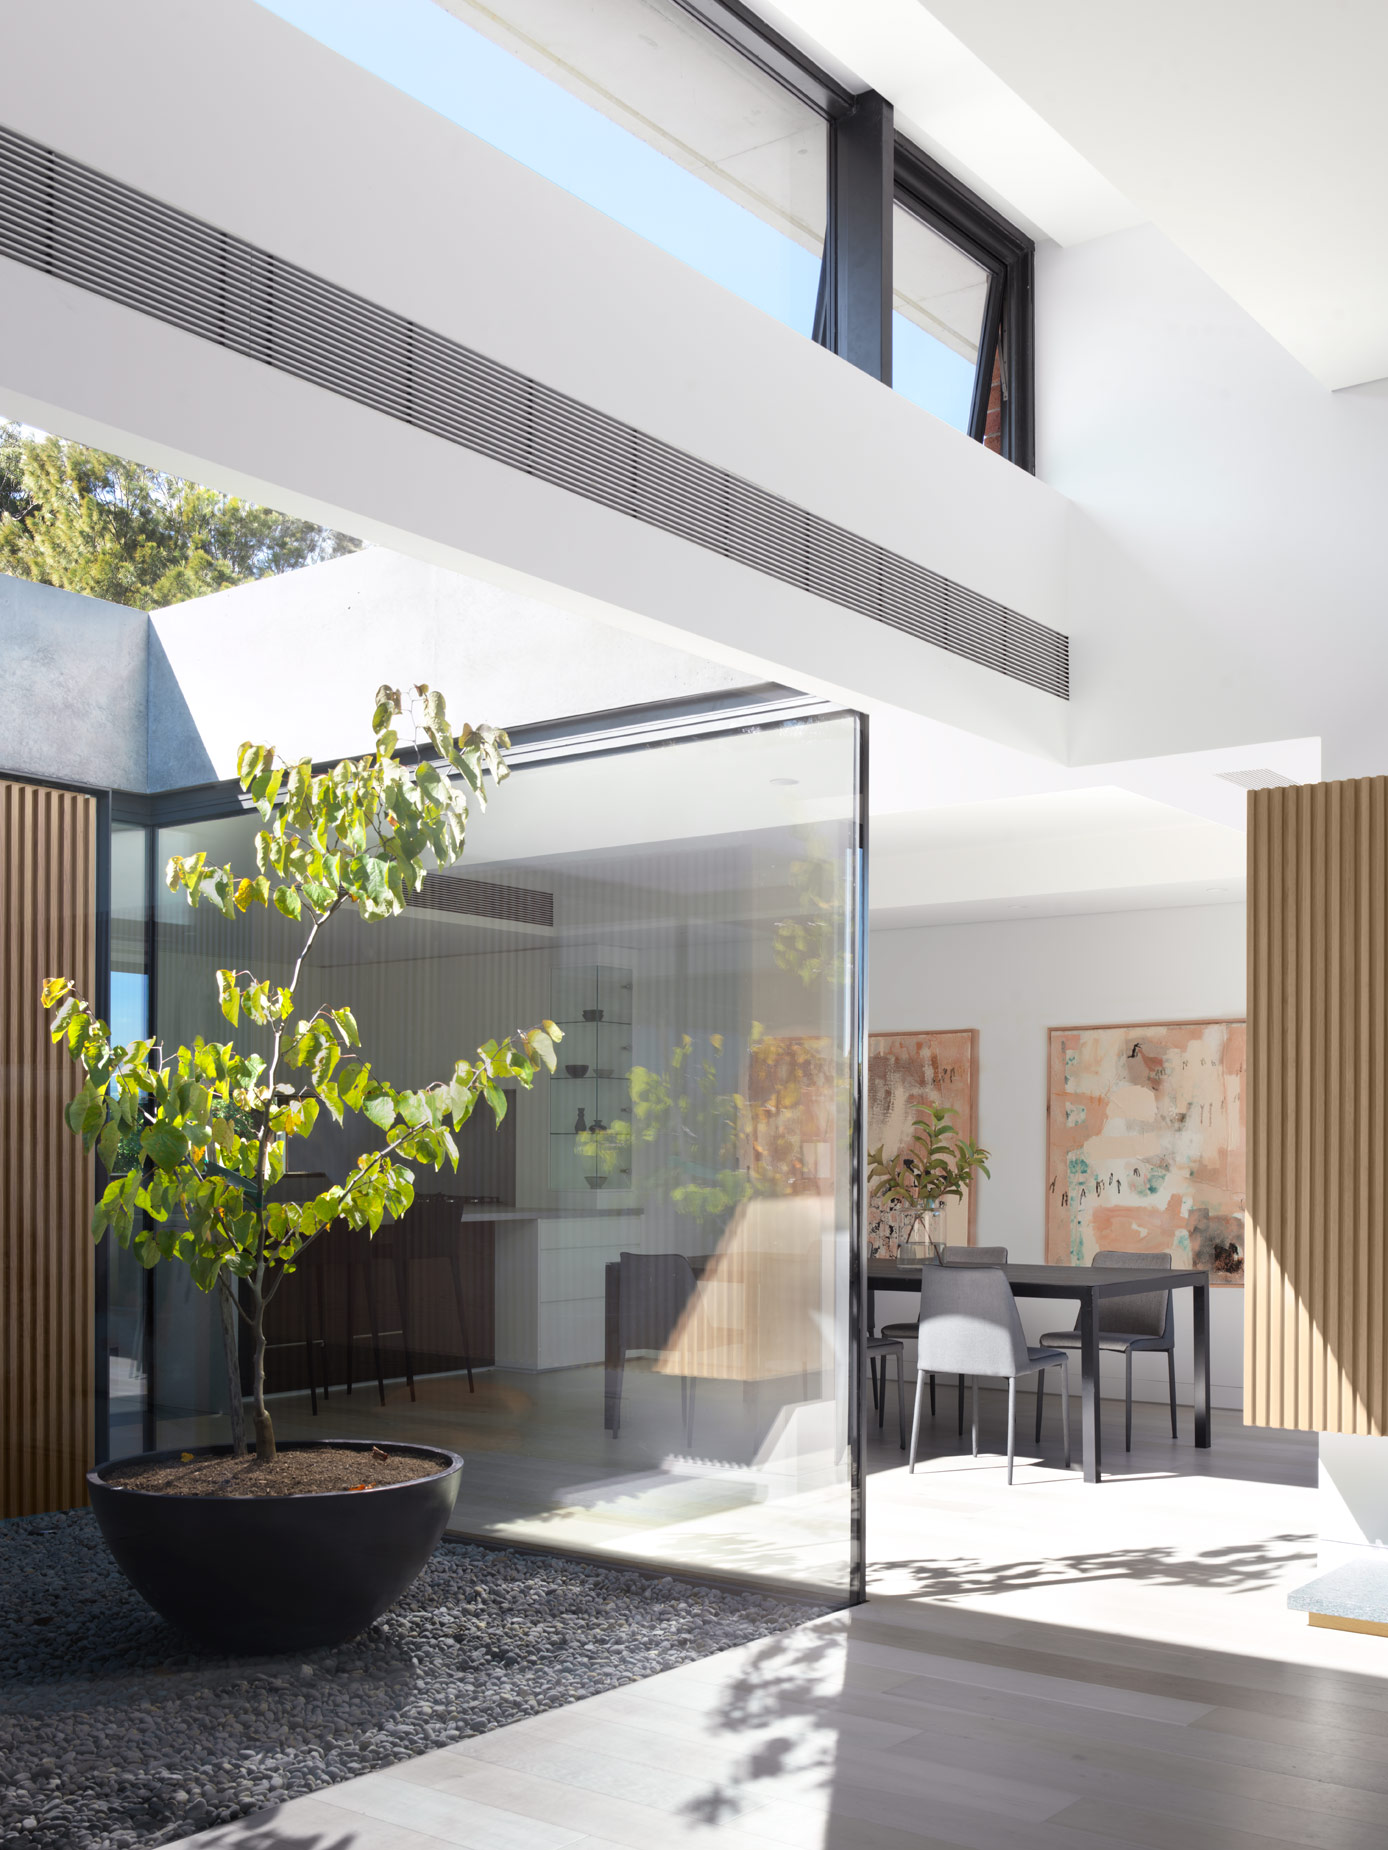 luke-butterly-2020-Cove-Cove-House-by-Dieppe-Design-Architecture-Sydney-NSW-6